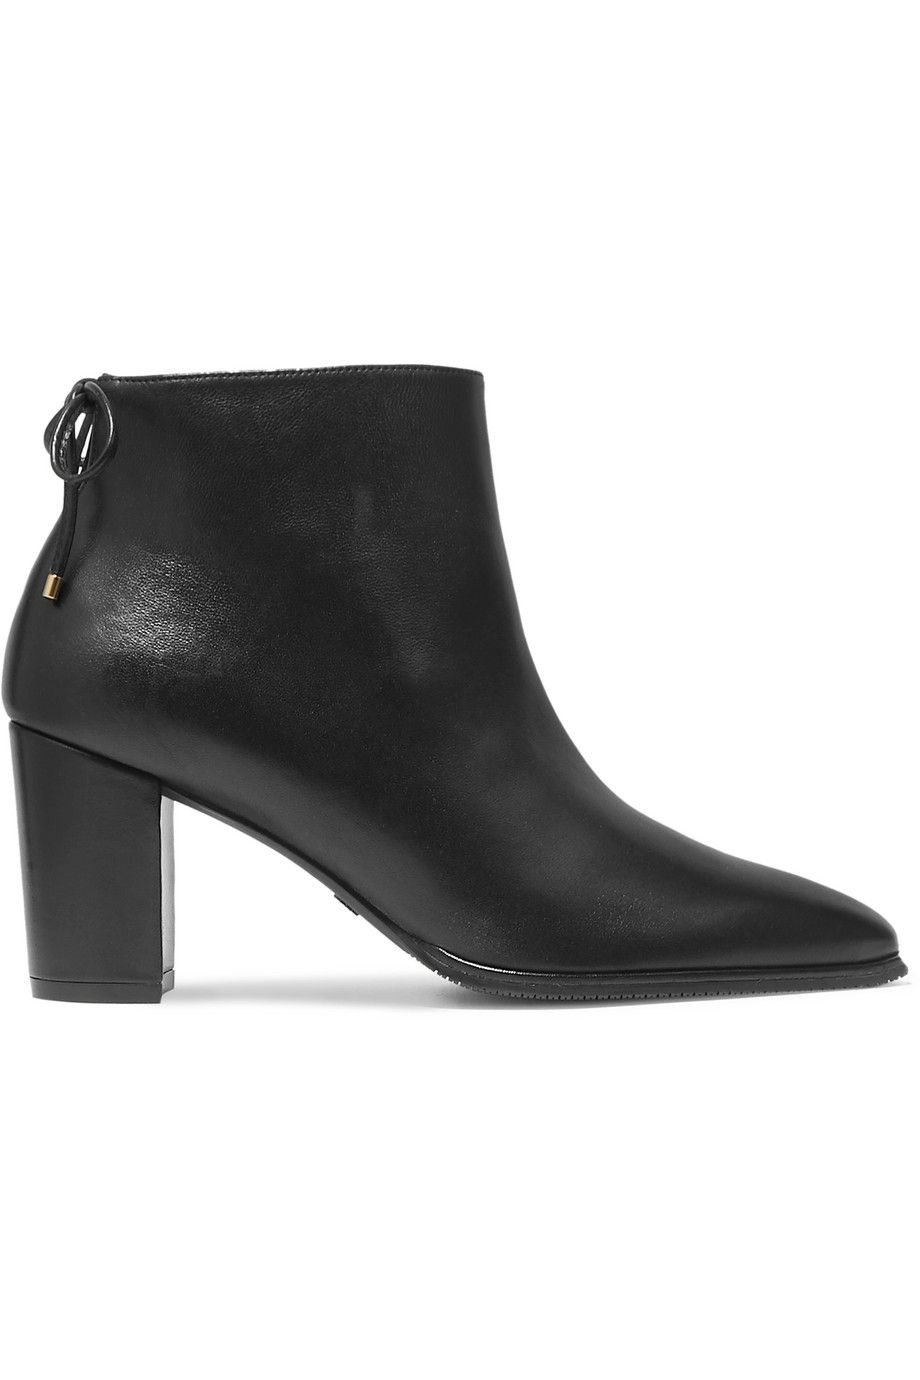 Shop the Look: Gardiner Leather Ankle Boots